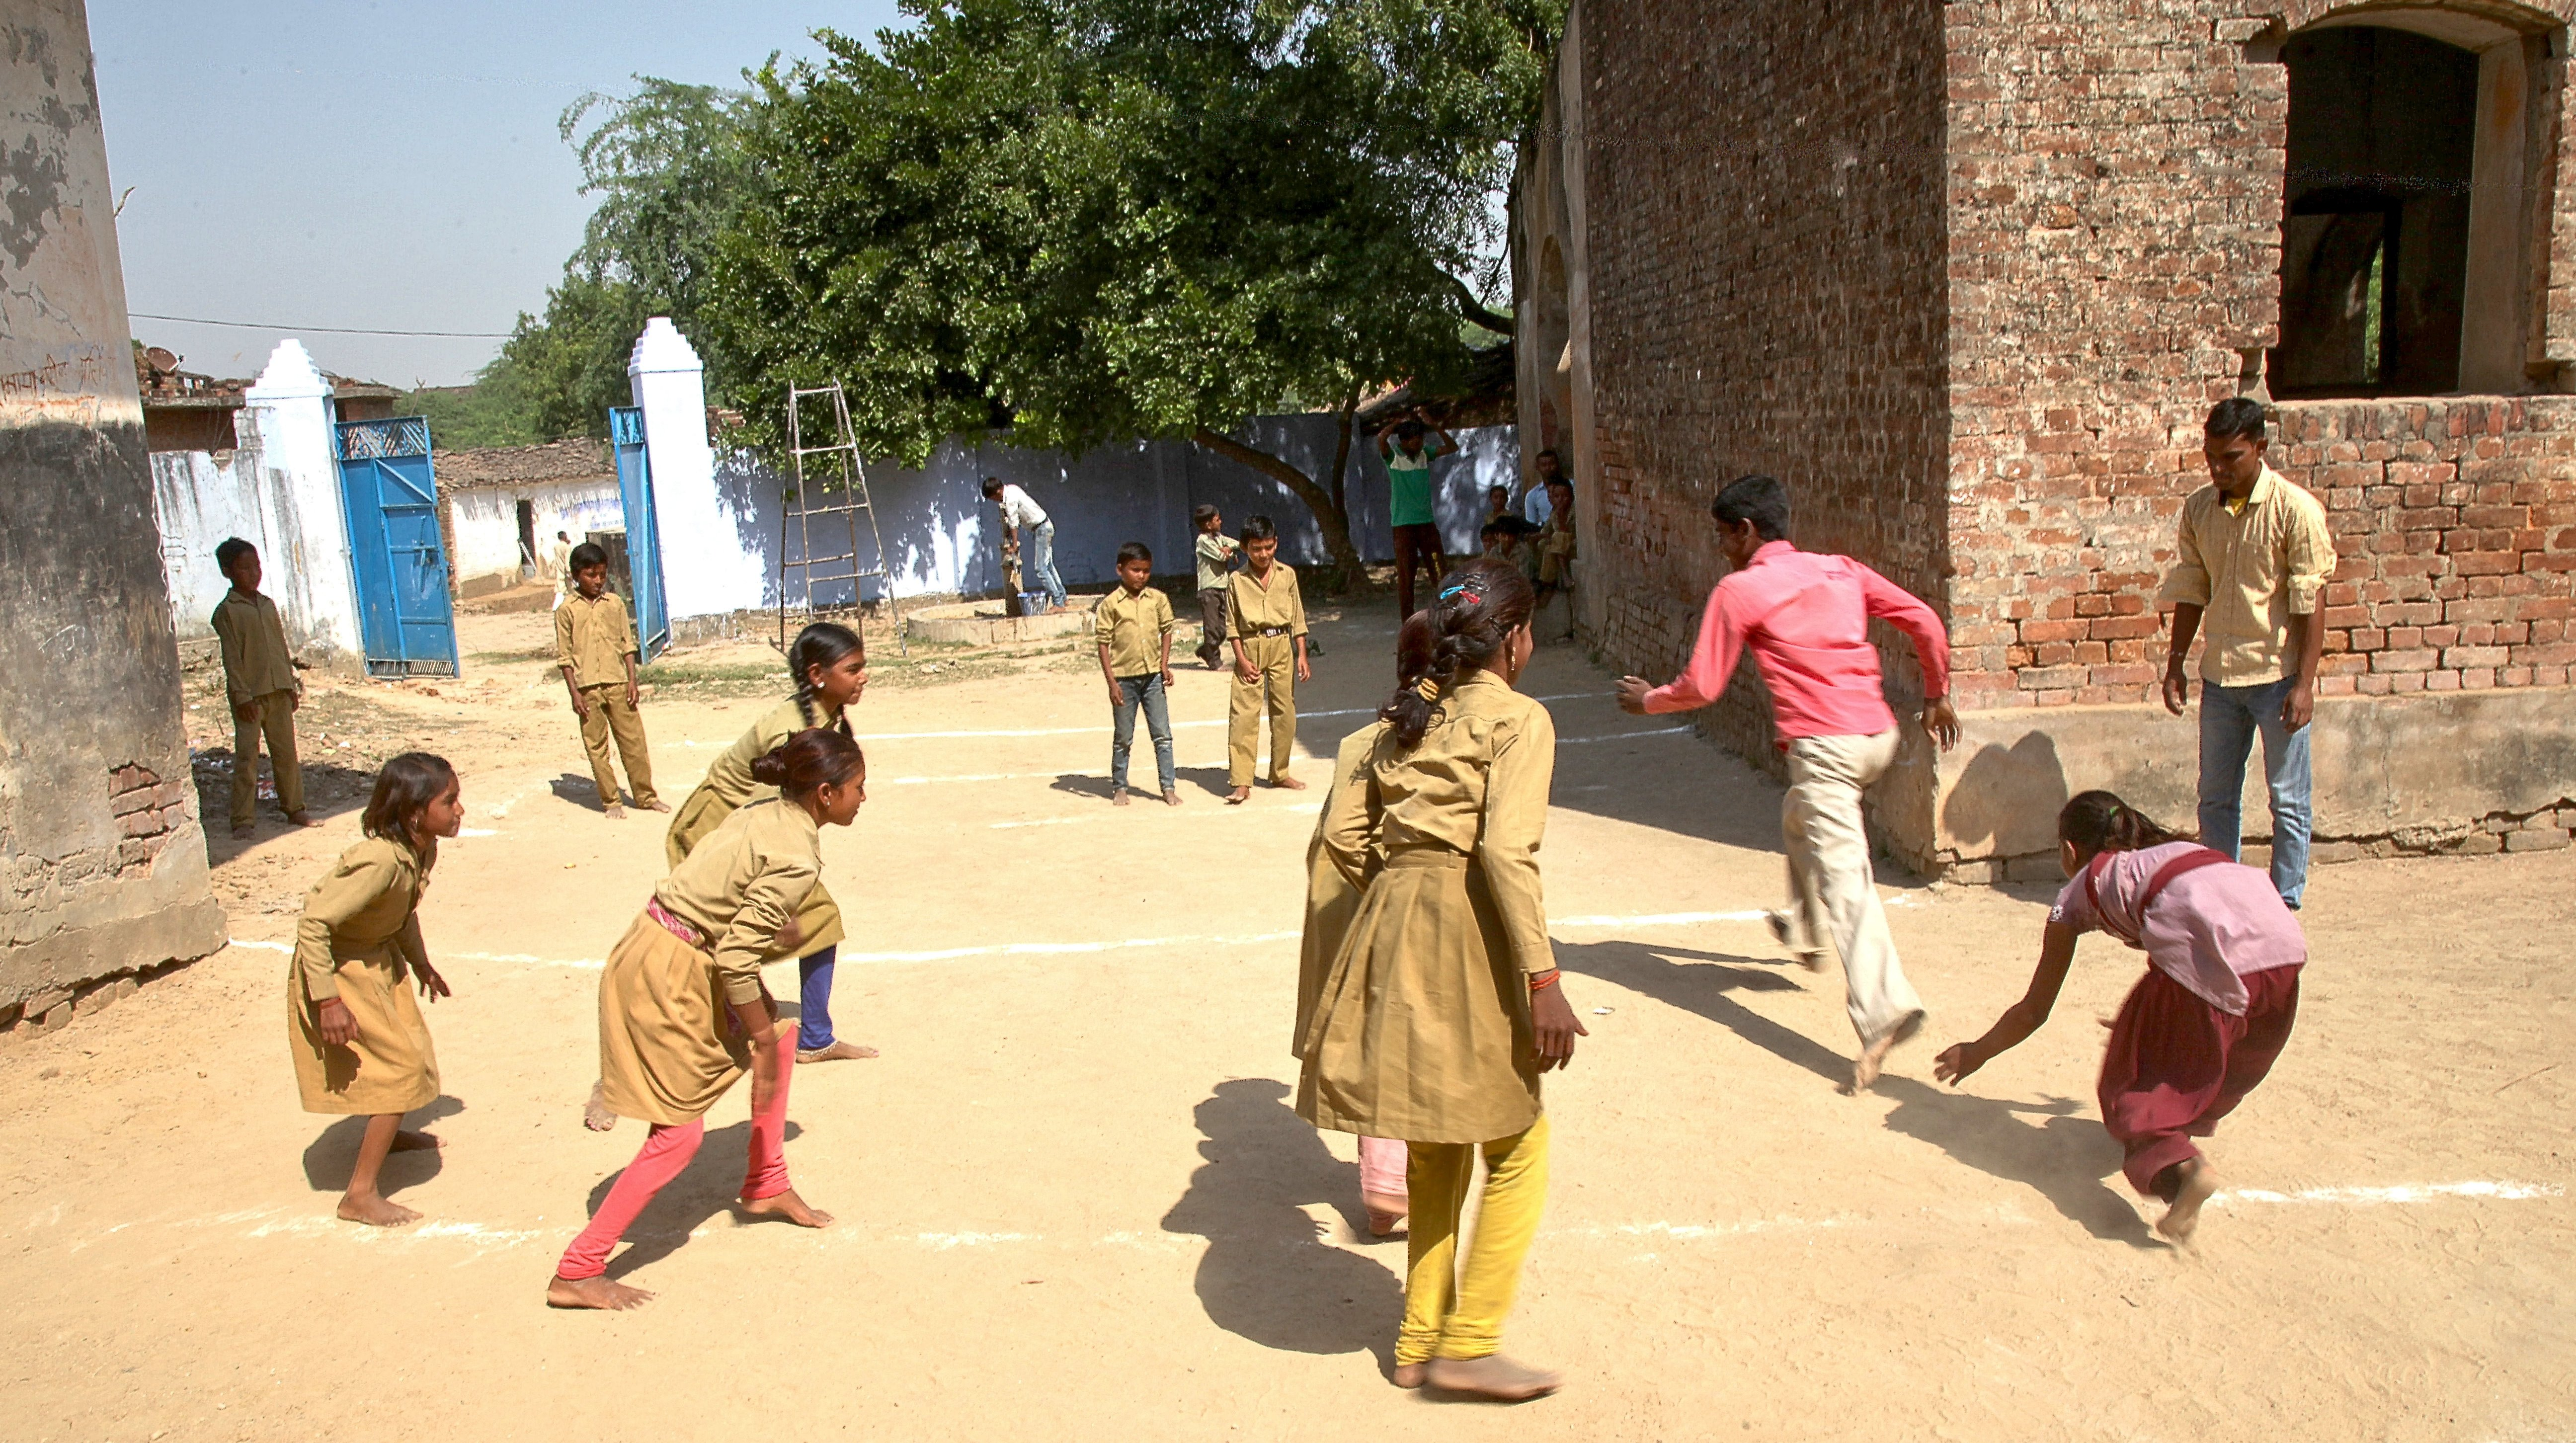 Both boys and girls joining sports activities in schools